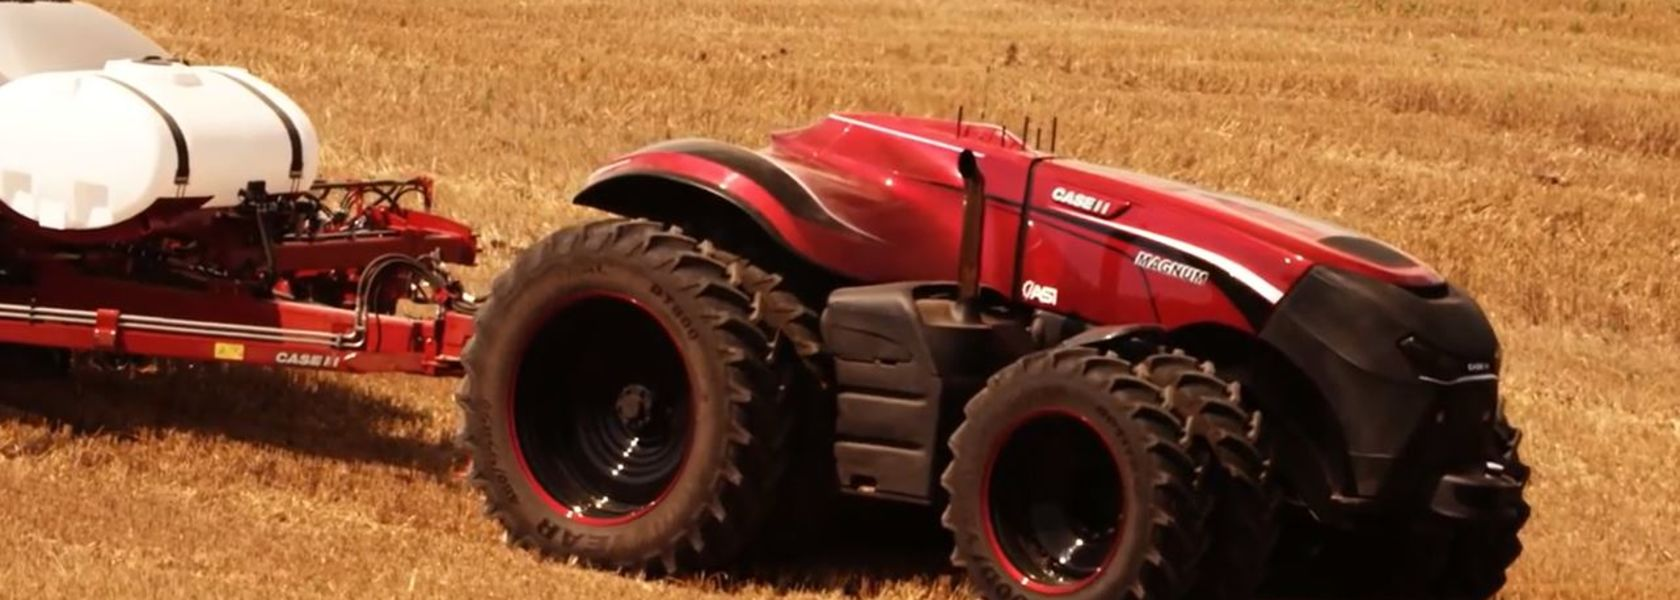 Shipments of agricultural robots to skyrocket